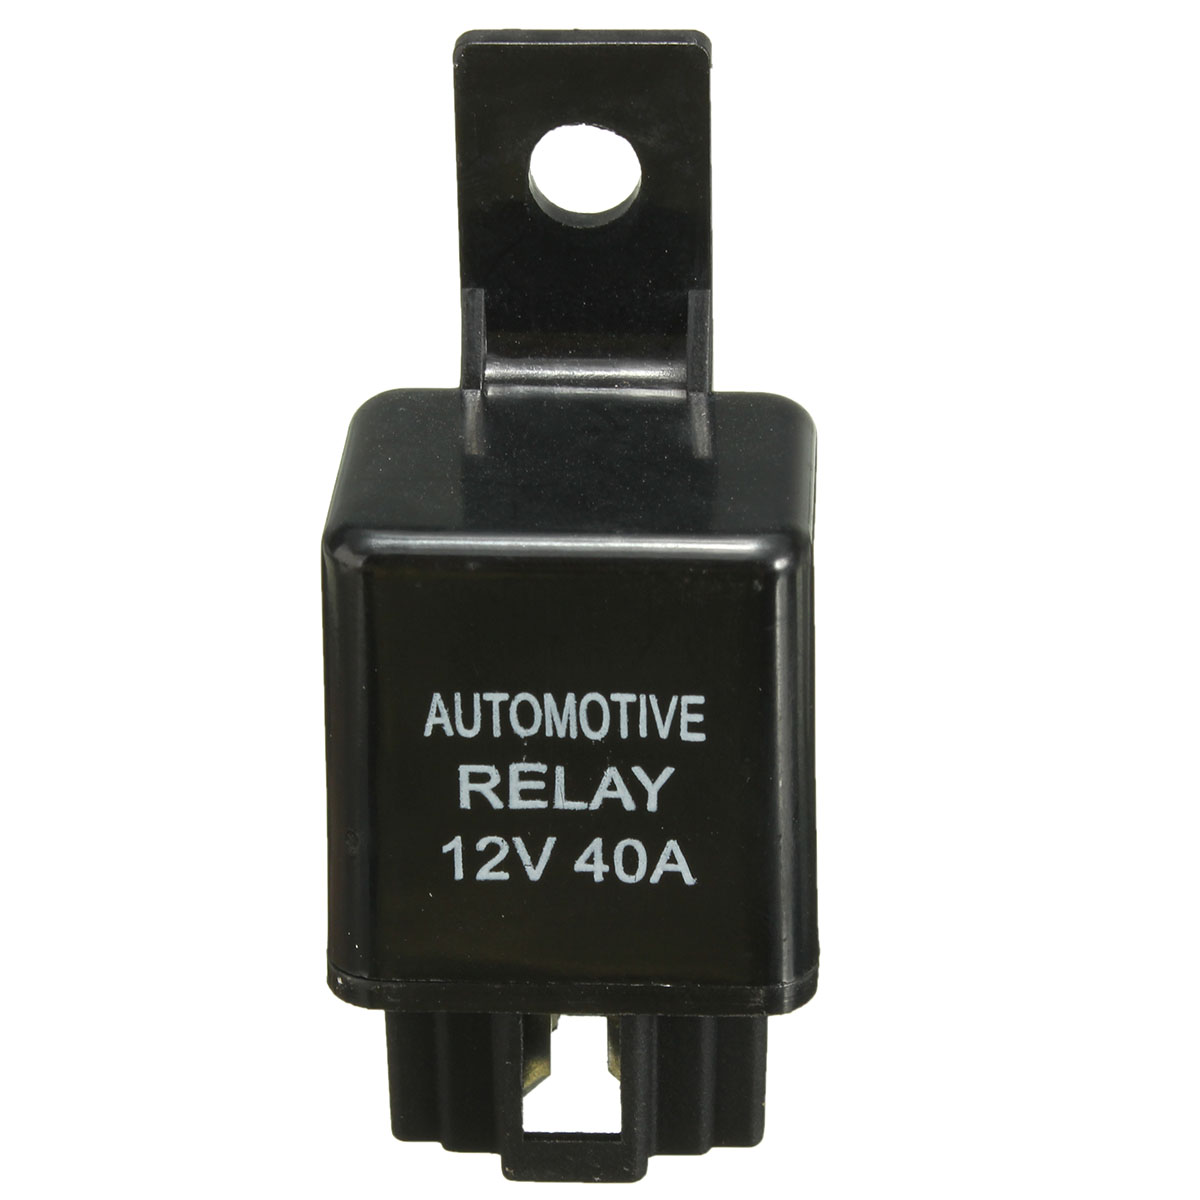 12v 40a 40 Amp Car Auto Automotive Van Boat Bike 4 Pin Spst Alarm Relay